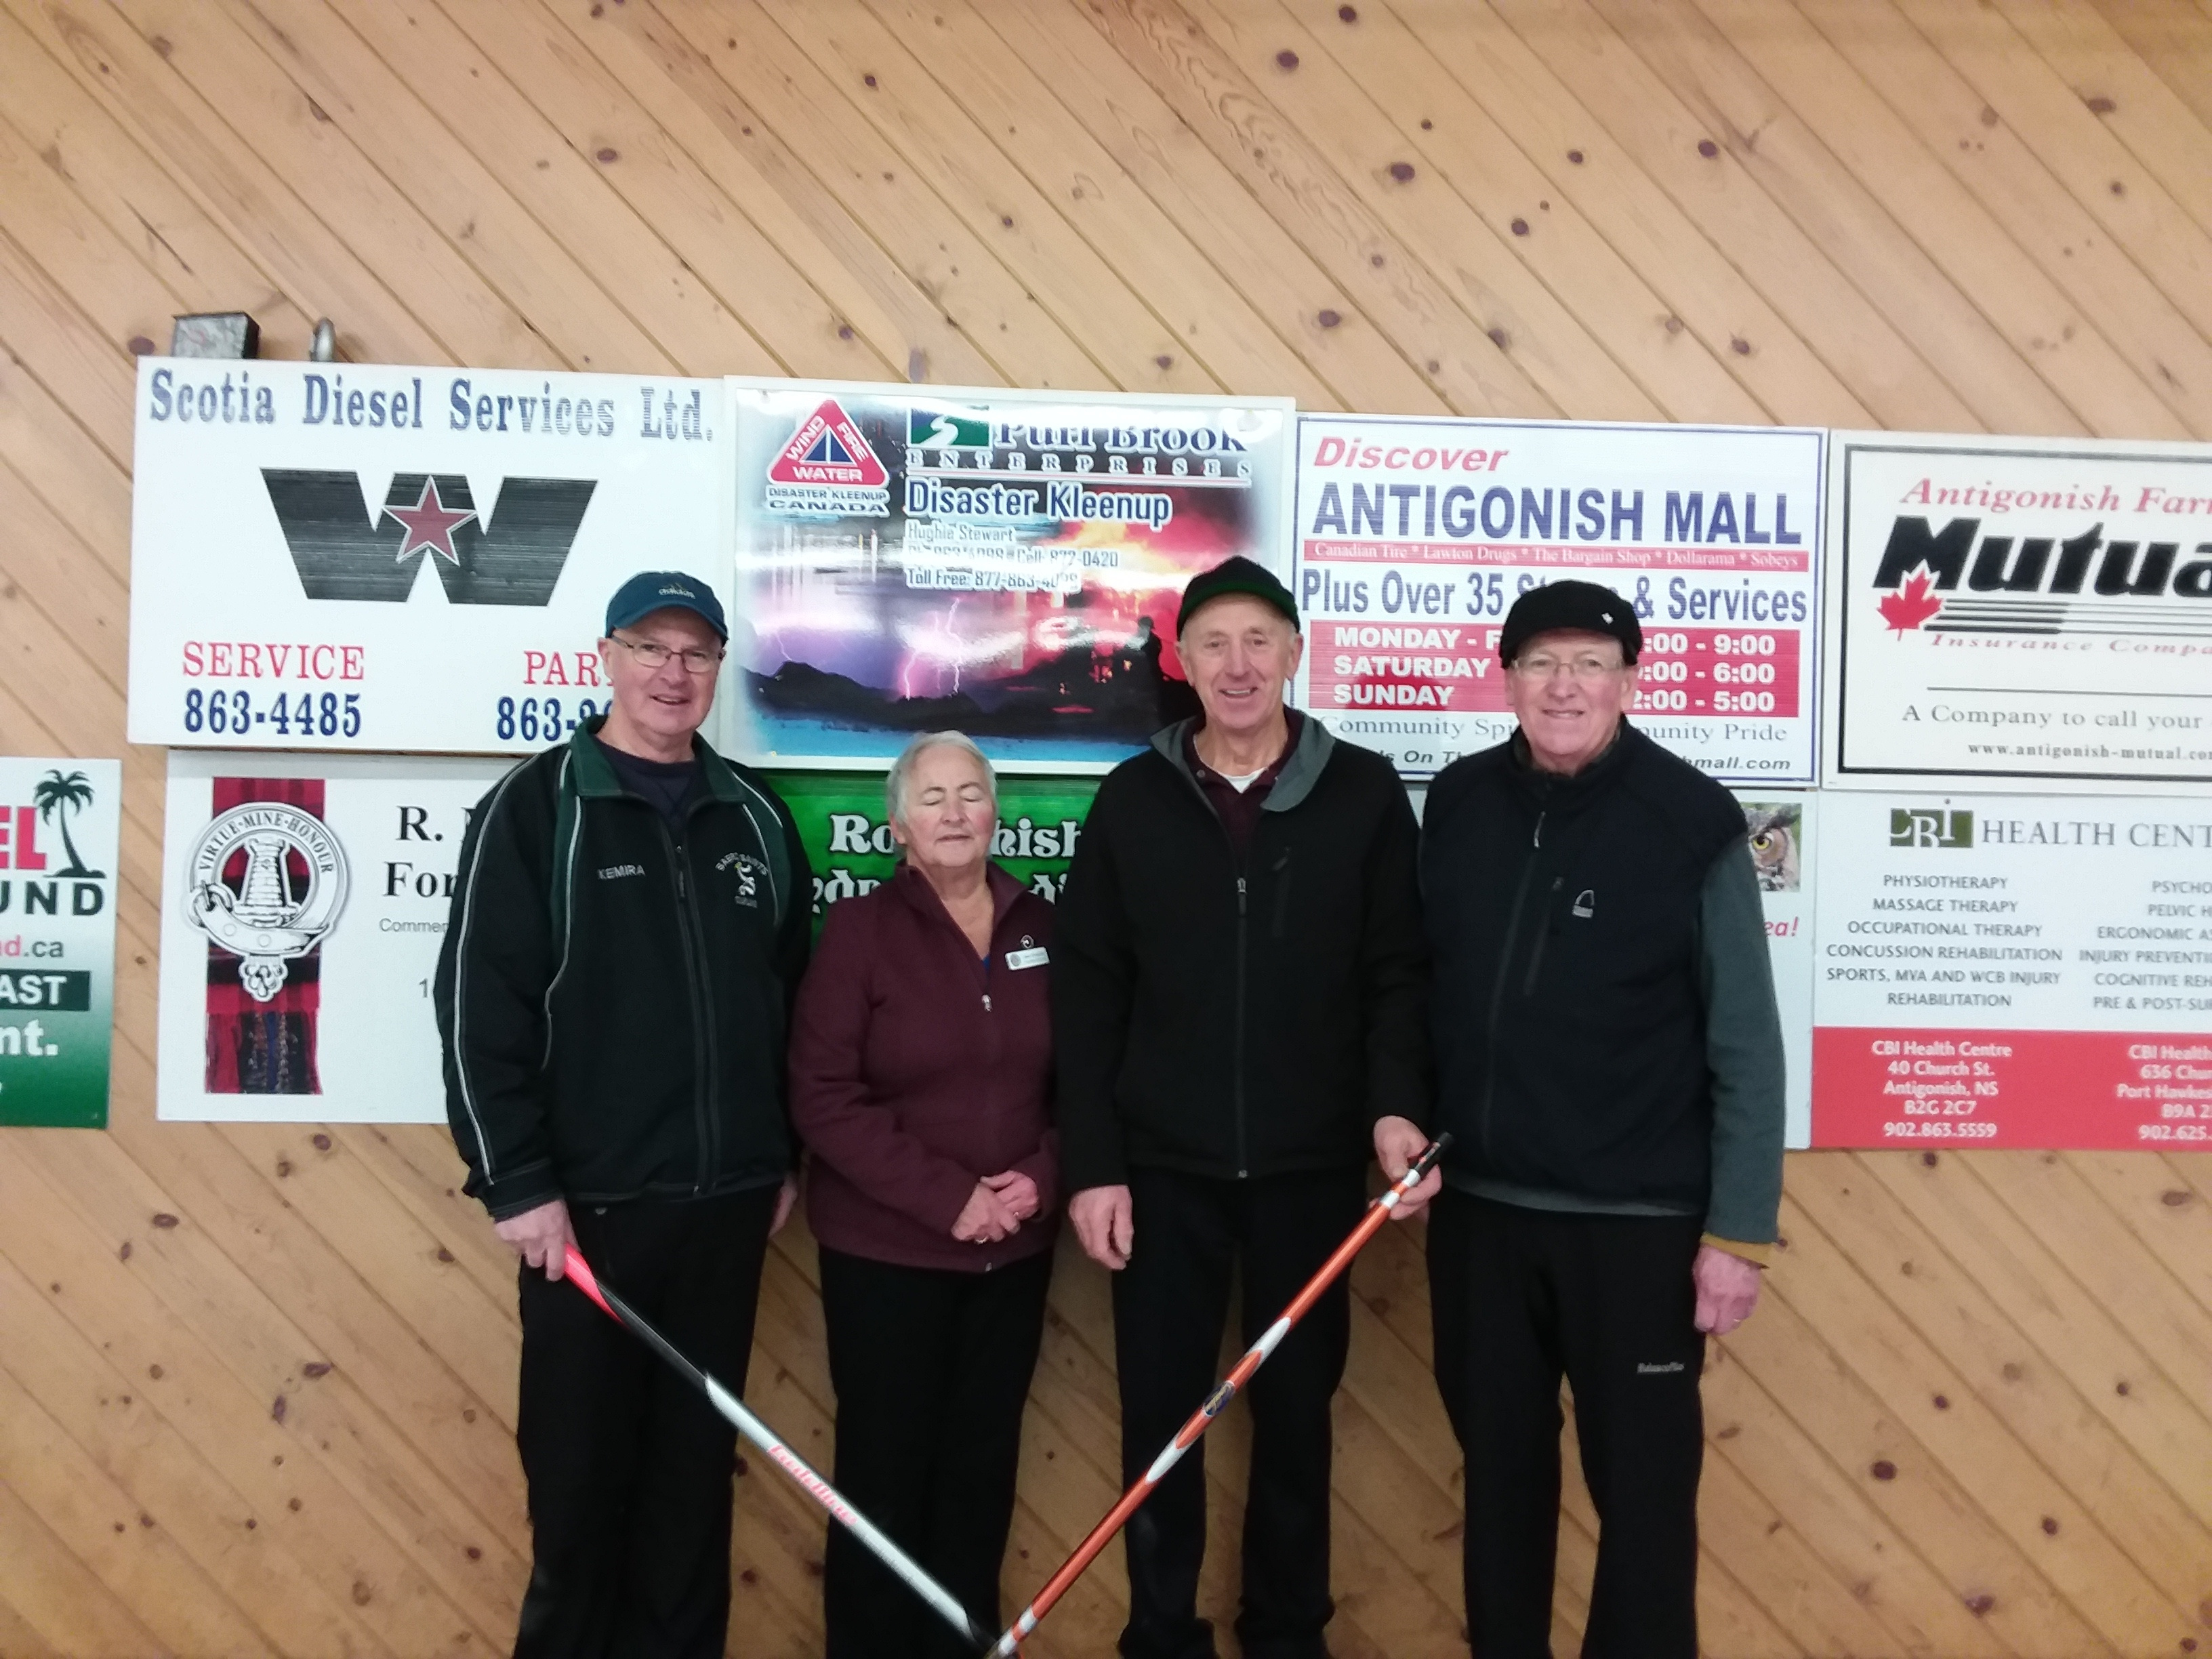 Thursday Seniors Second place winners L-R : Cyril Gillis, Joan Chisholm, John Rogers, Colin MacGillivray